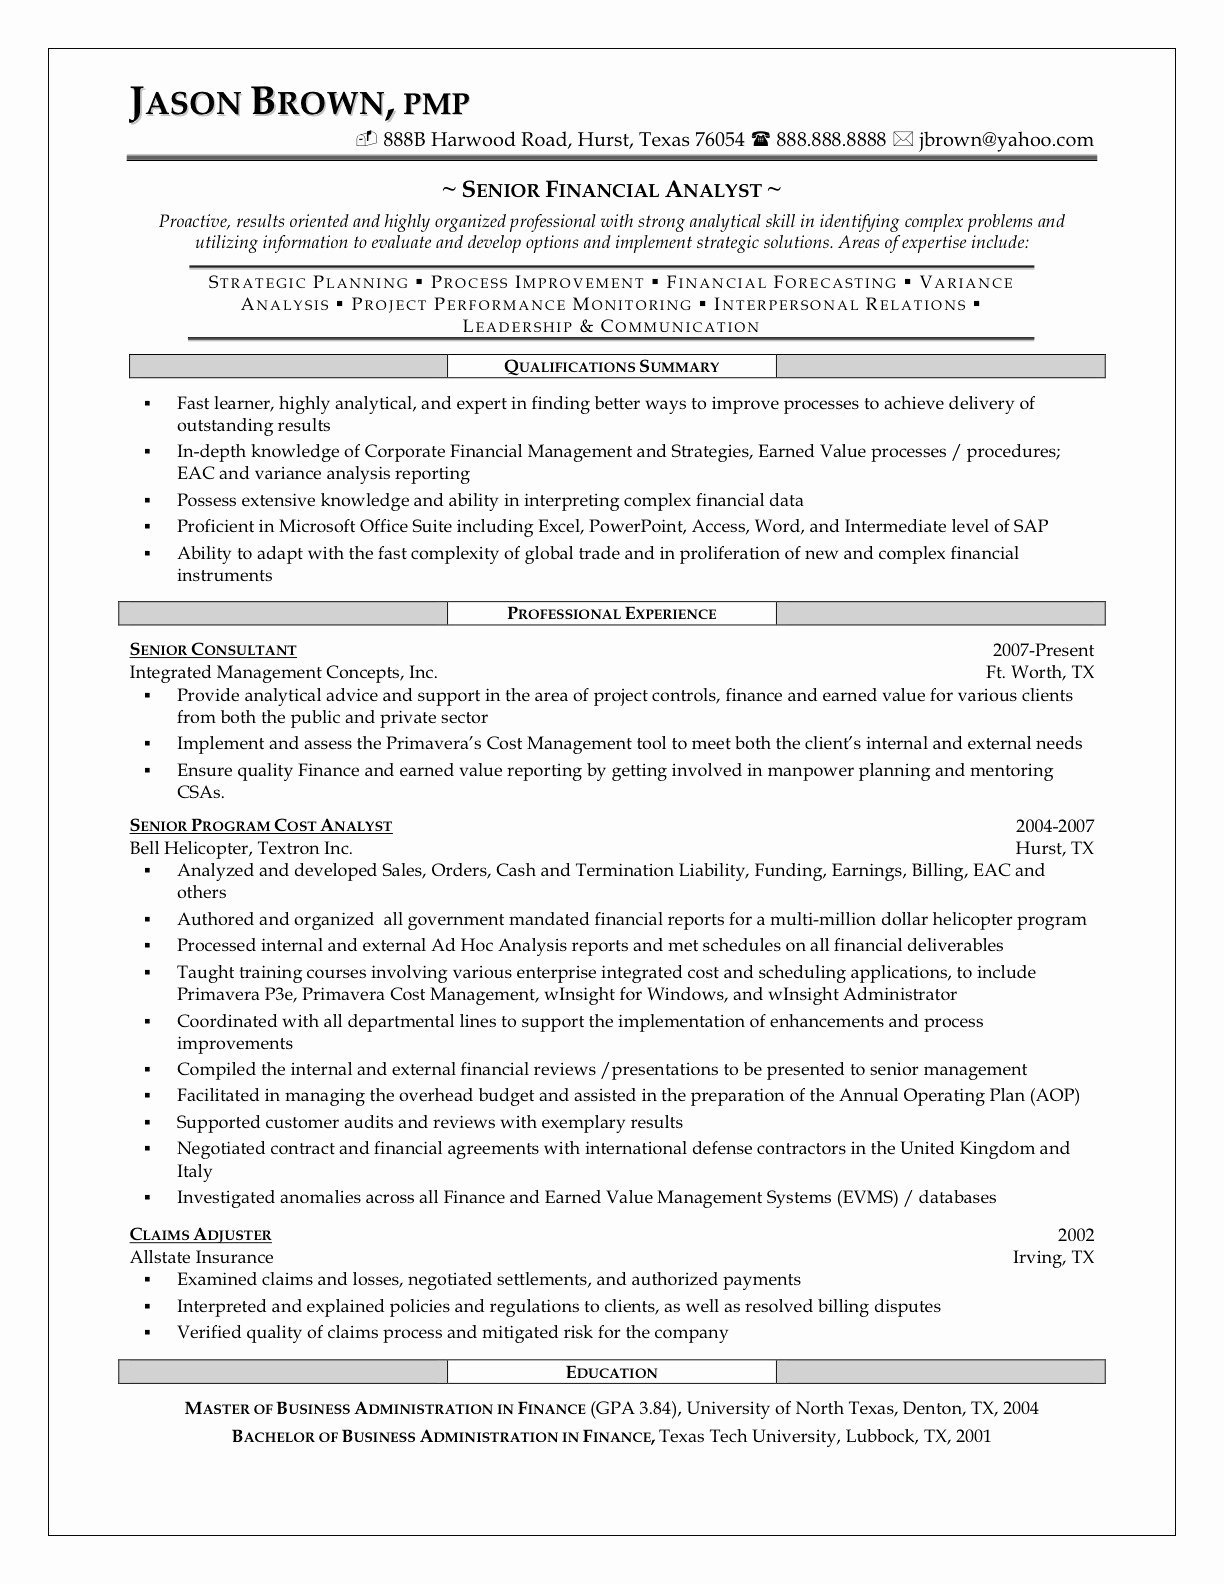 Financial Analyst Resume Template New Best Financial Analyst Job Resume Sample